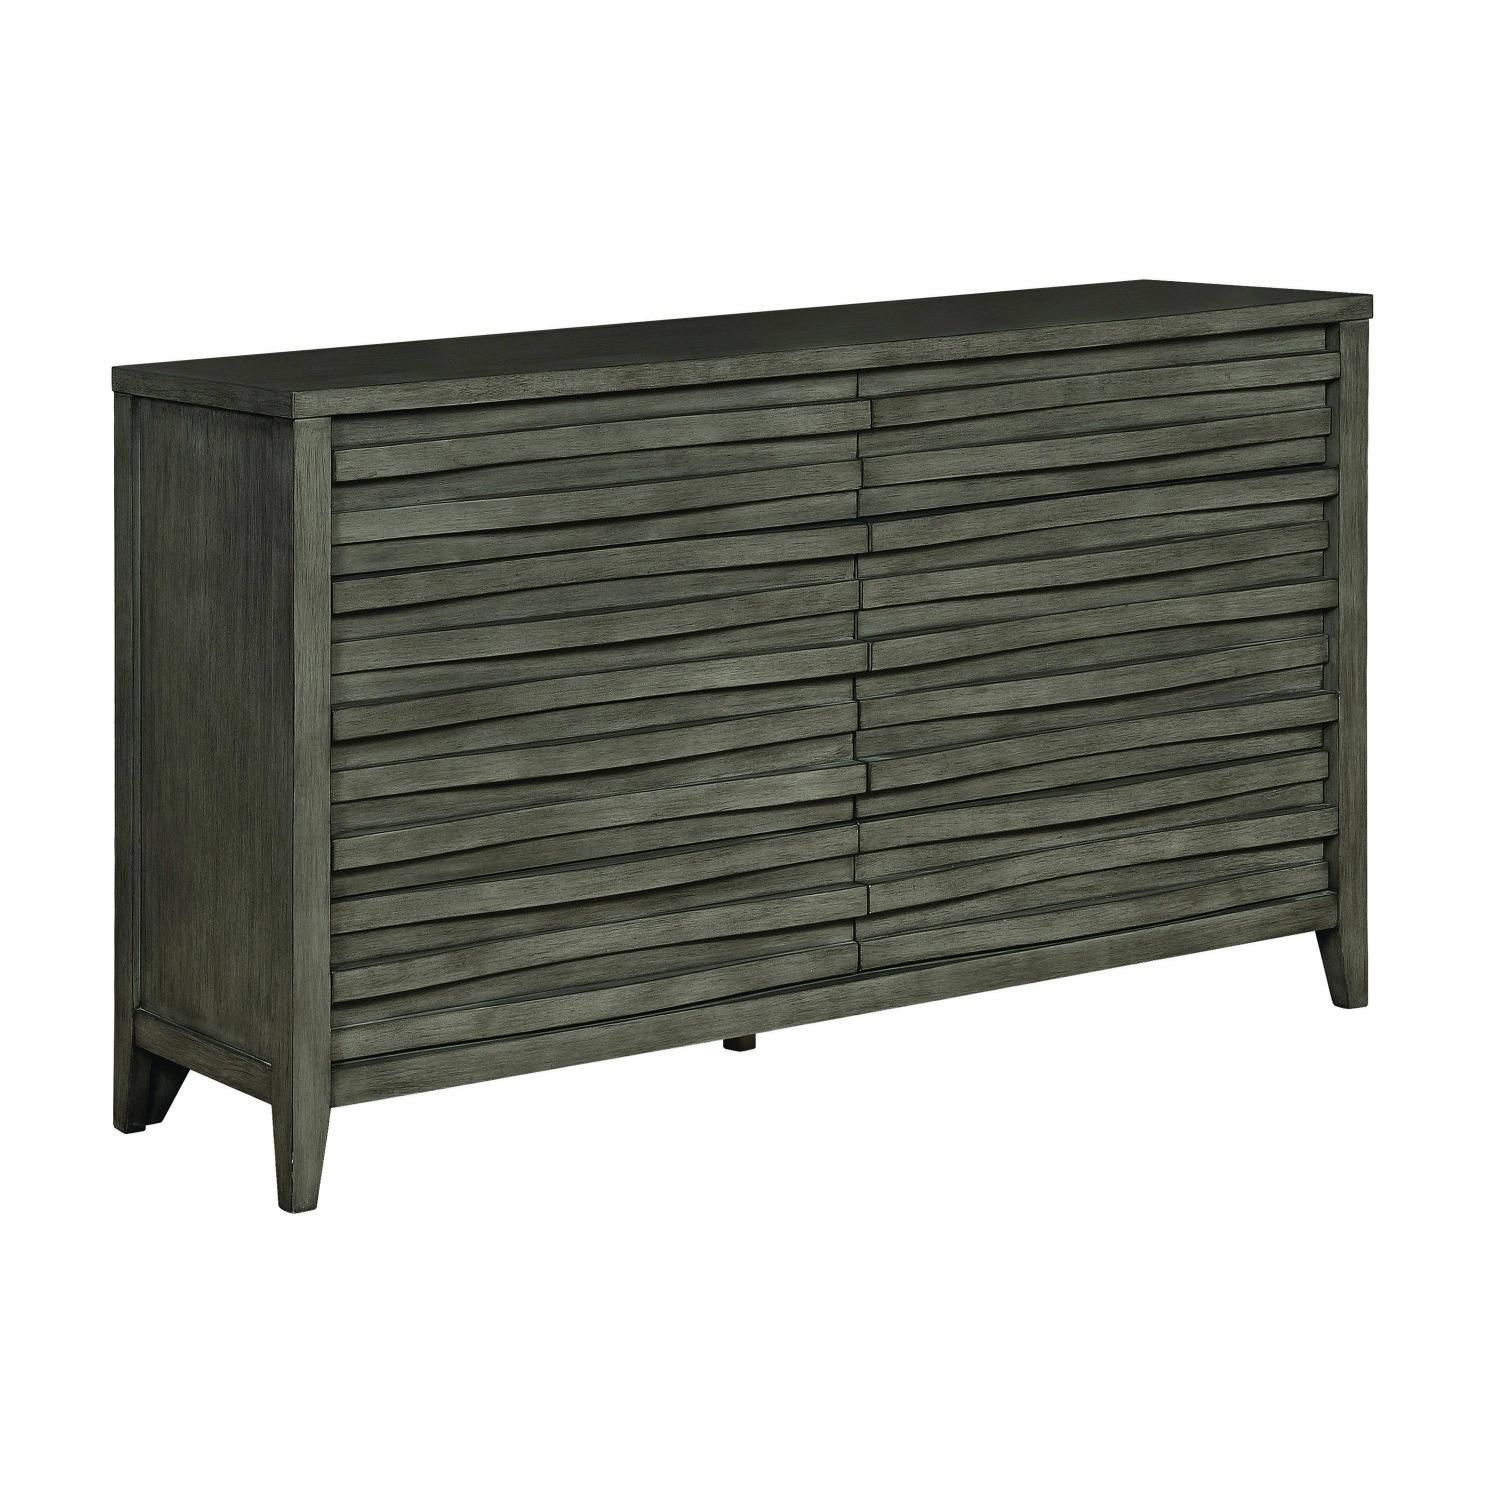 Queen Bed in Dark Taupe w/ 2 Storage Drawers - image-9